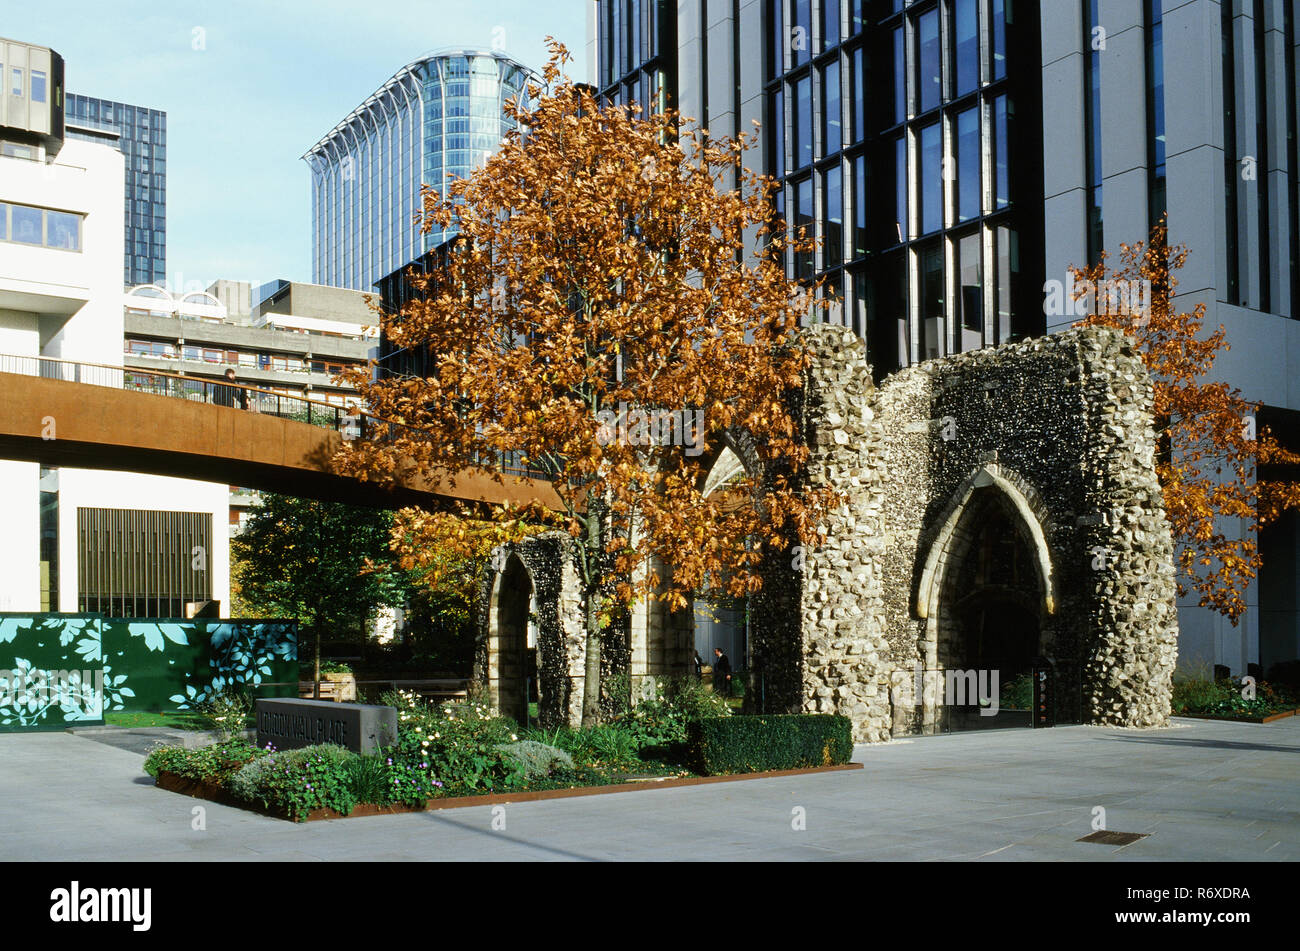 The ruins of St Alphege church near the Barbican, on London Wall, in the City of London, UK - Stock Image